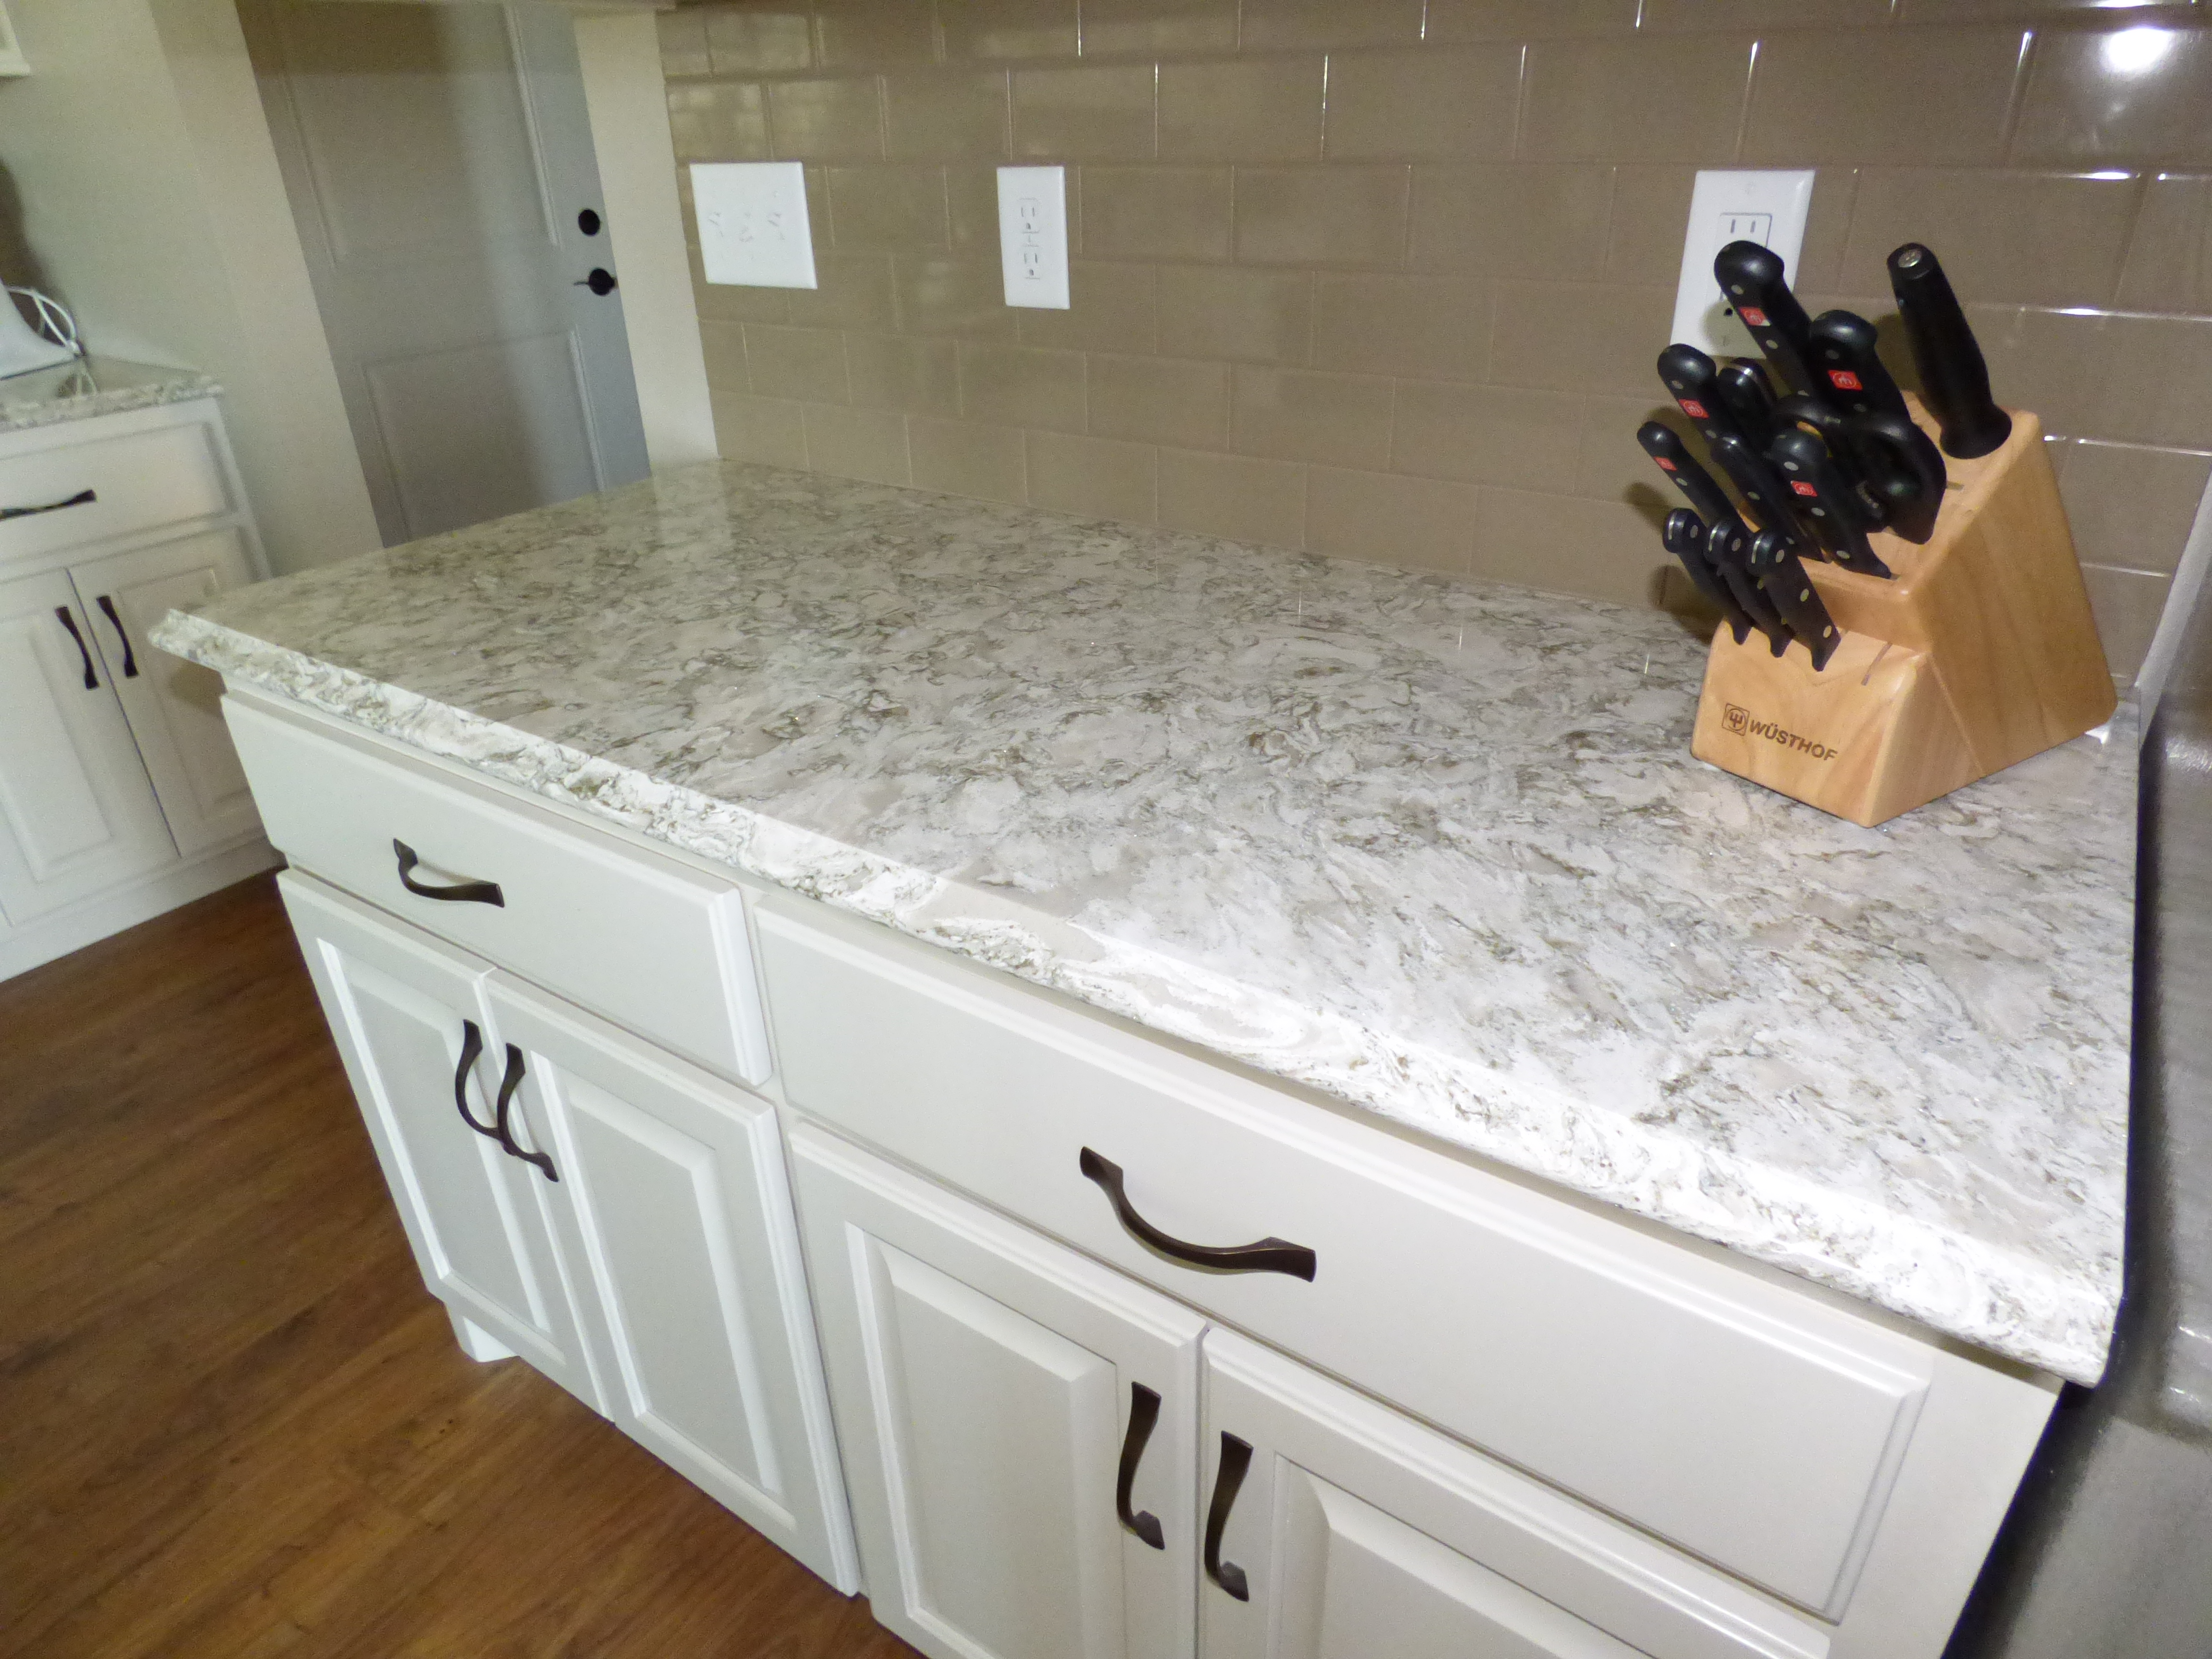 neutrals events surfaces and quartz the offers countertops intriguing olives monochromatic taupes desert trends with stone creams movement cambria while that countertop s marble news about us collection